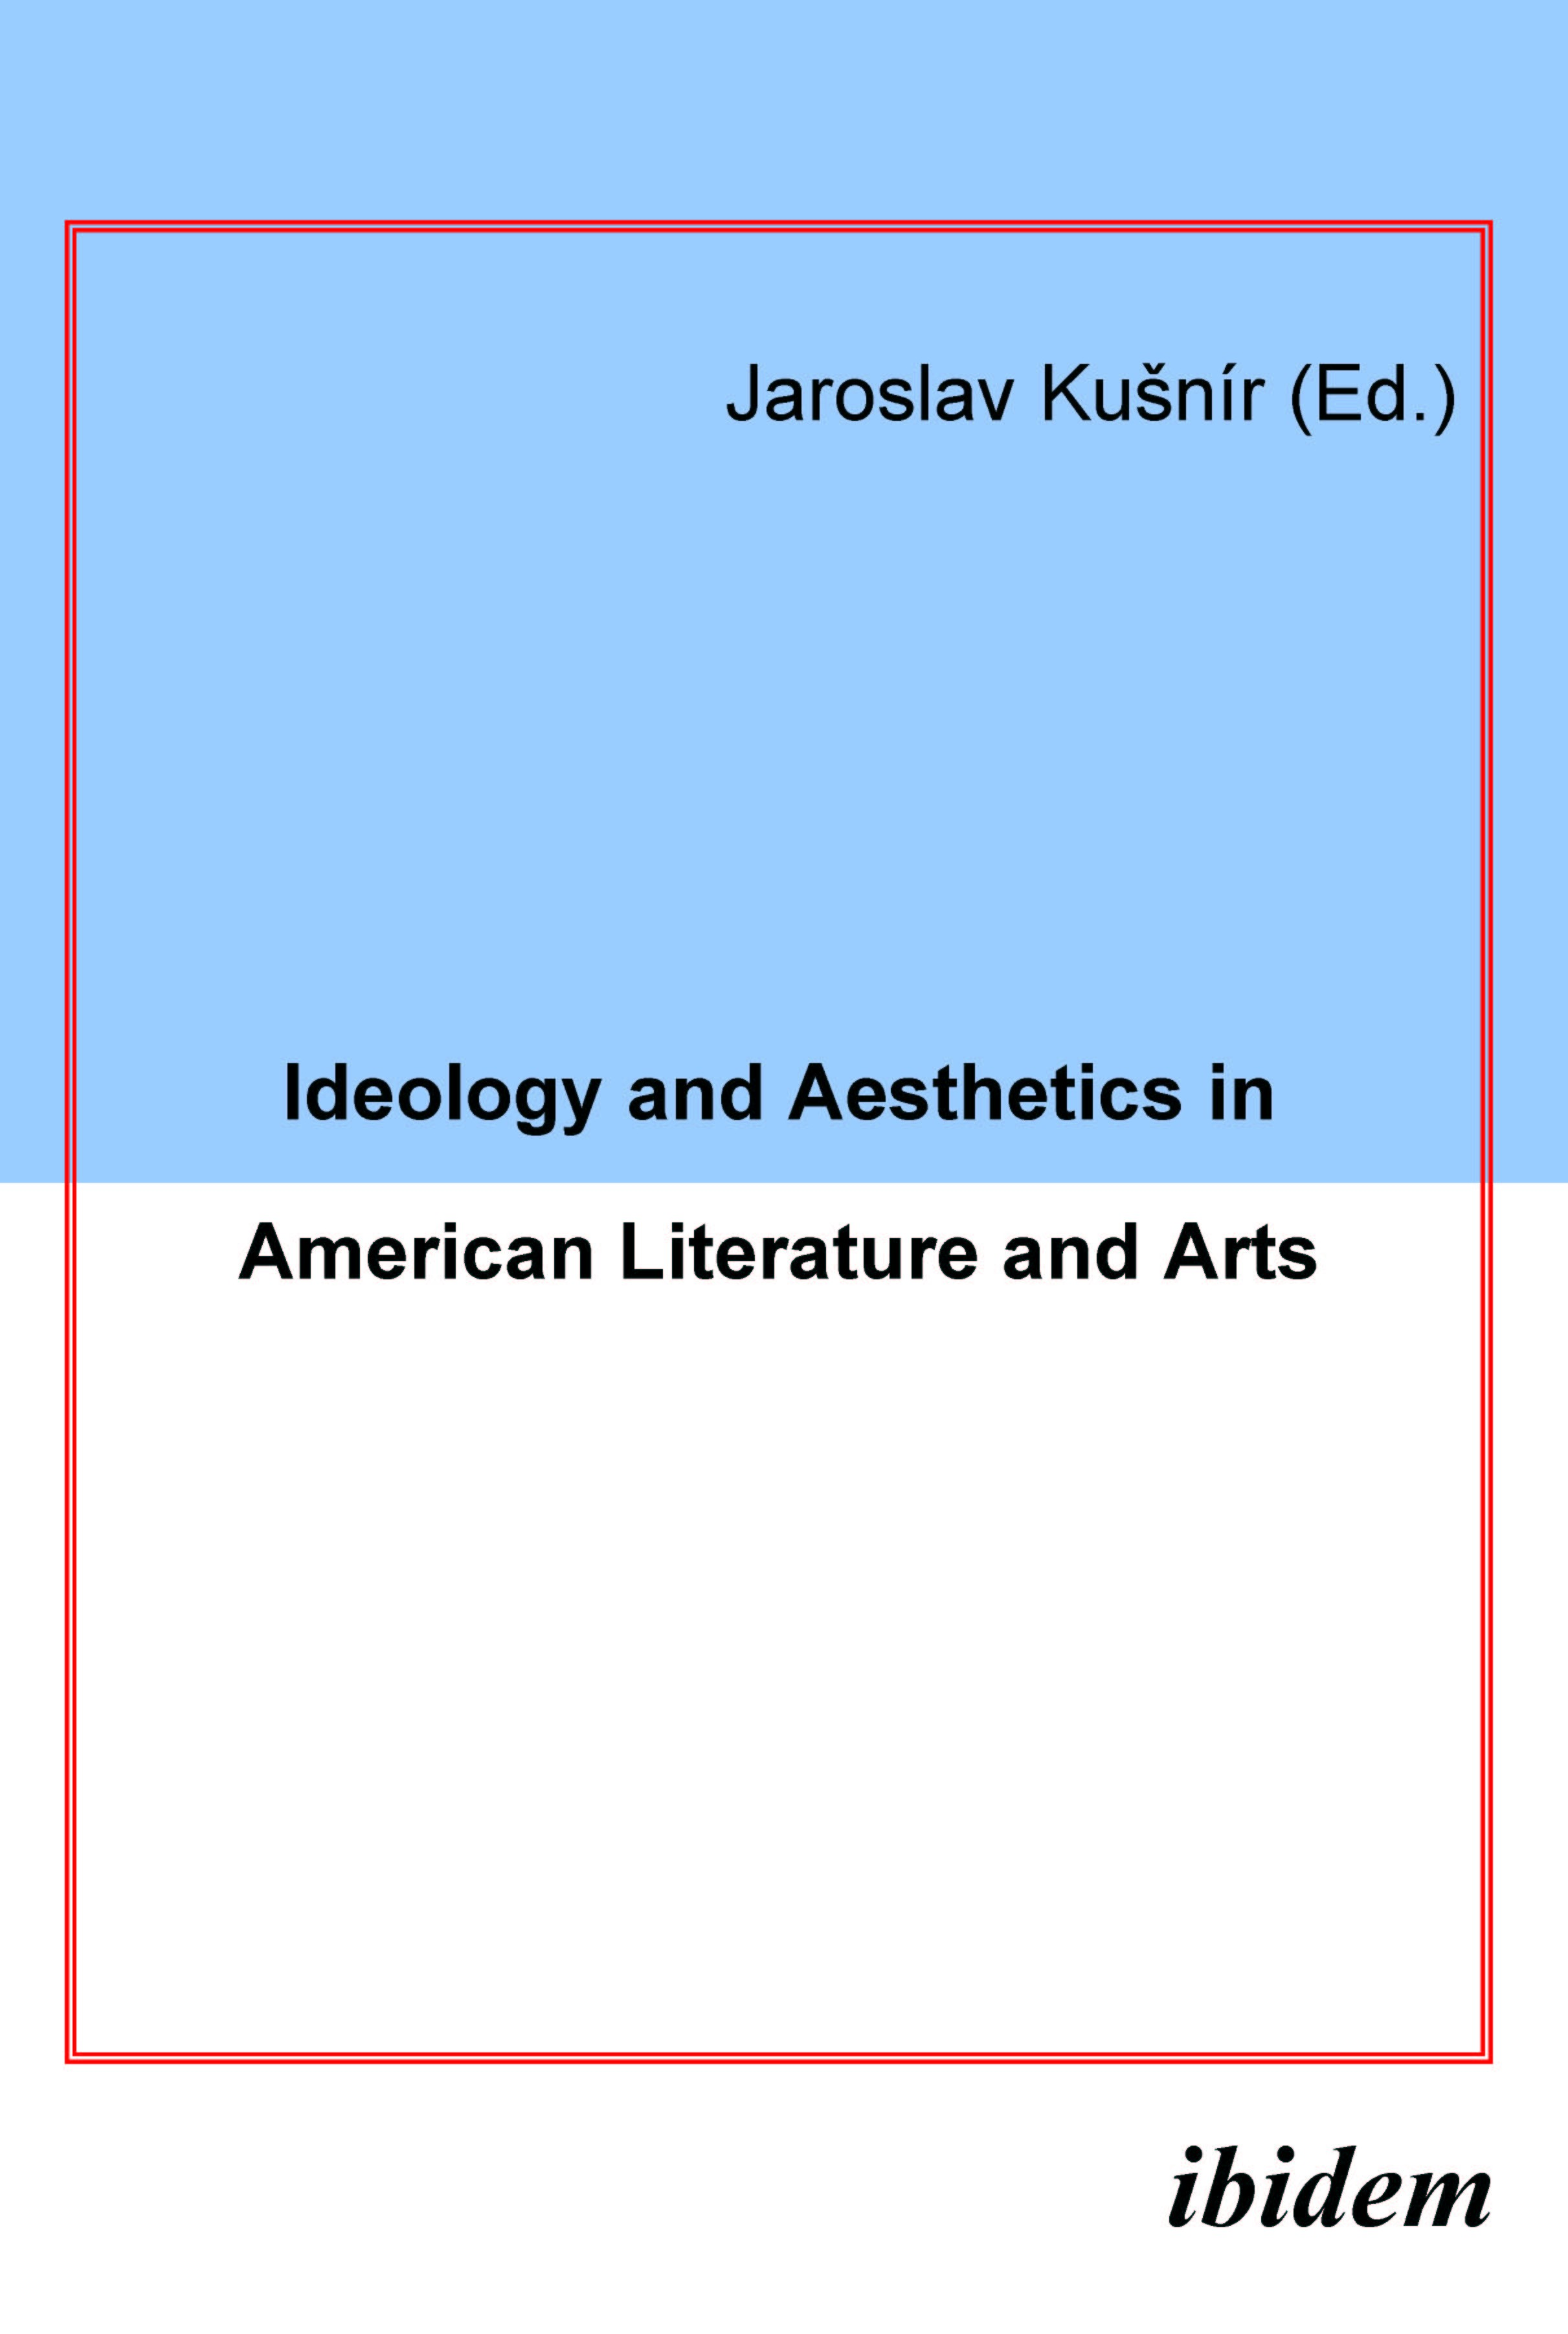 Ideology and Aesthetics in American Literature and Arts